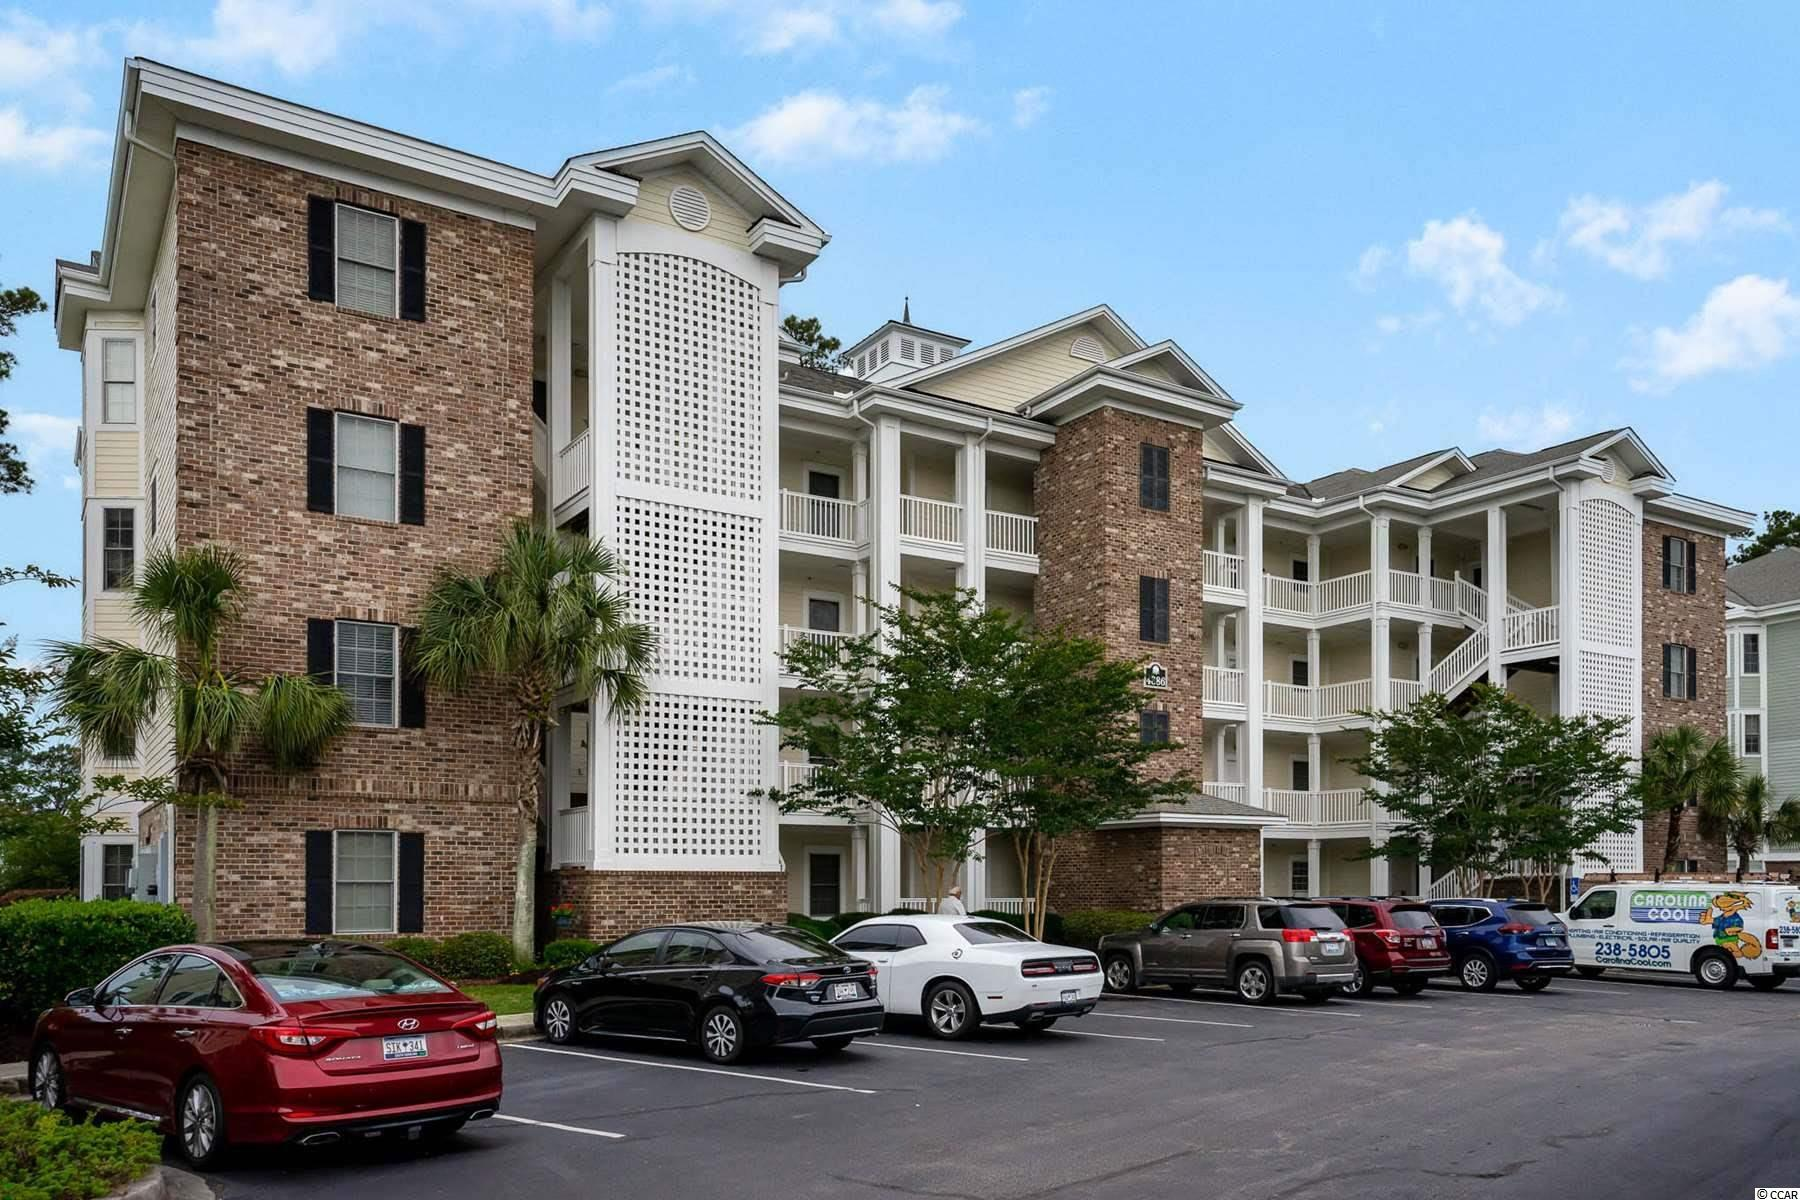 Located in Magnolia Point, this beautiful, fully furnished 3rd floor - 3 bed 2 bath unit offers an open floor plan, great views of the golf course and plenty of room to enjoy get togethers with family and friends. Kitchen is fully equipped to make all meals, and has additional seating at the breakfast far.  Sit outside on your private balcony and enjoy relaxing while drinking your morning coffee or evening drink or enjoy the community pool and picnic areas .  conveniently located to area attractions, shopping, dining & entertainment, the Intracoastal Waterway, the Beach and so much more!  Hurry and schedule your showing today!